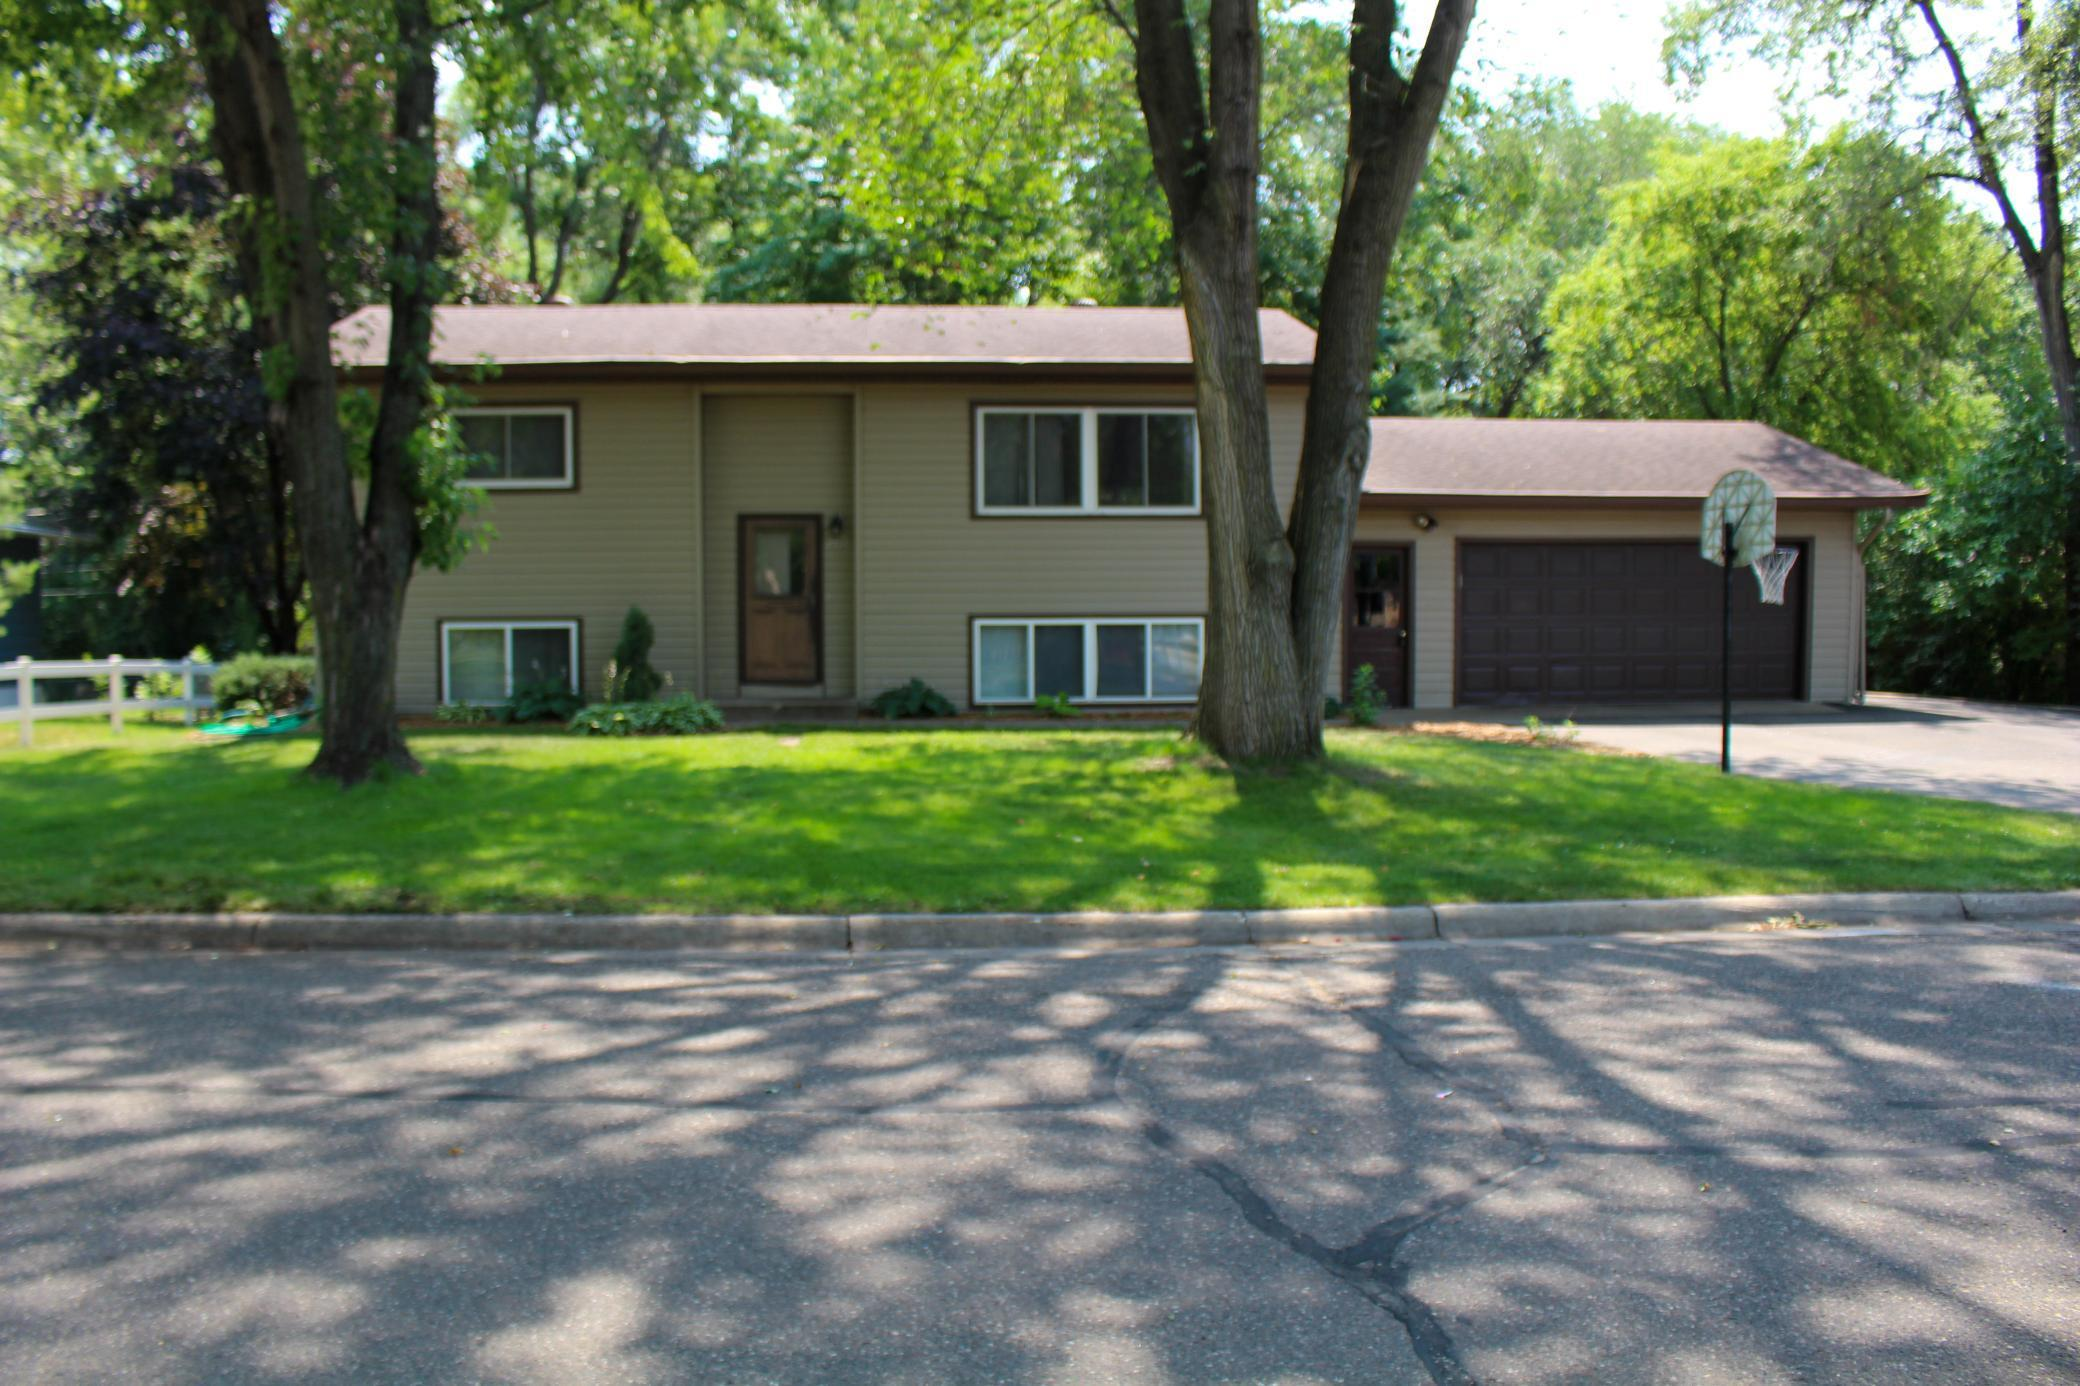 This home has been well cared for and it shows.  The 4-season room overlooks the wooded backyard.   2 decks.  The fenced backyard includes a storage shed.  All appliances are included.   Close to parks, schools, and shopping.